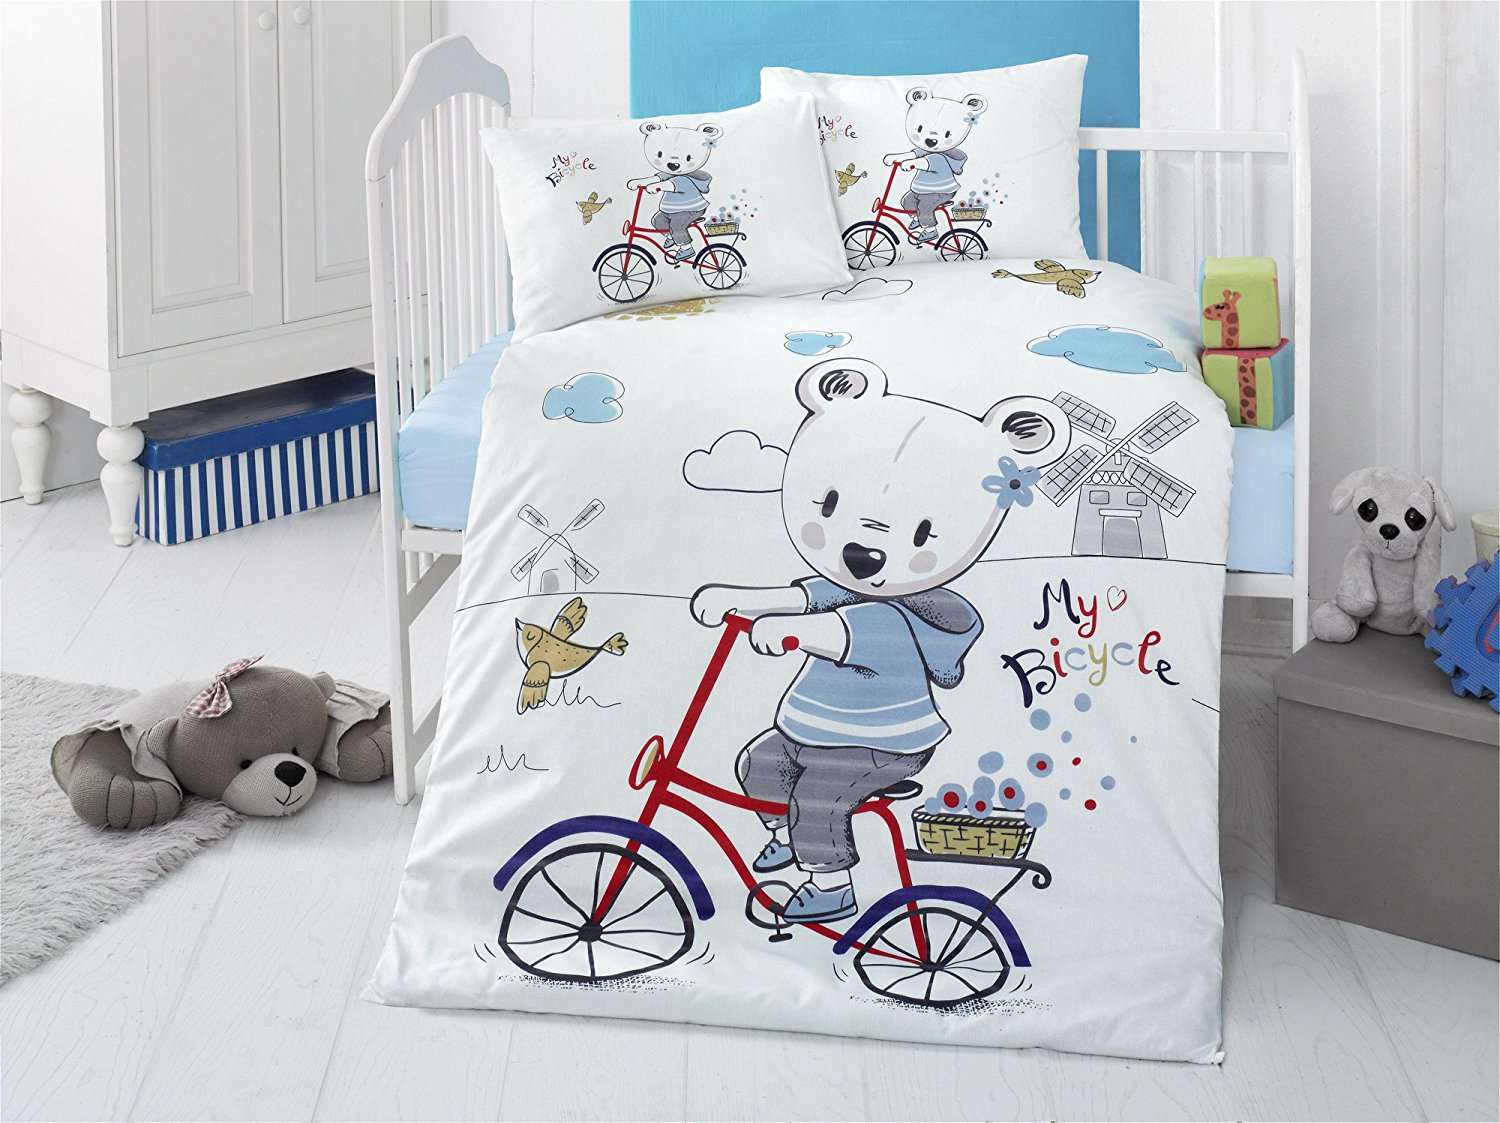 LaModaHome 5 Pcs Baby My Bicycle Bird Farm Playing Bear Casual Blue Happy Toddler Cotton Bedding COTTON COMFORTER Set, Turkey 100% Cotton Nursery [with COTTON Quilt/Comforter]